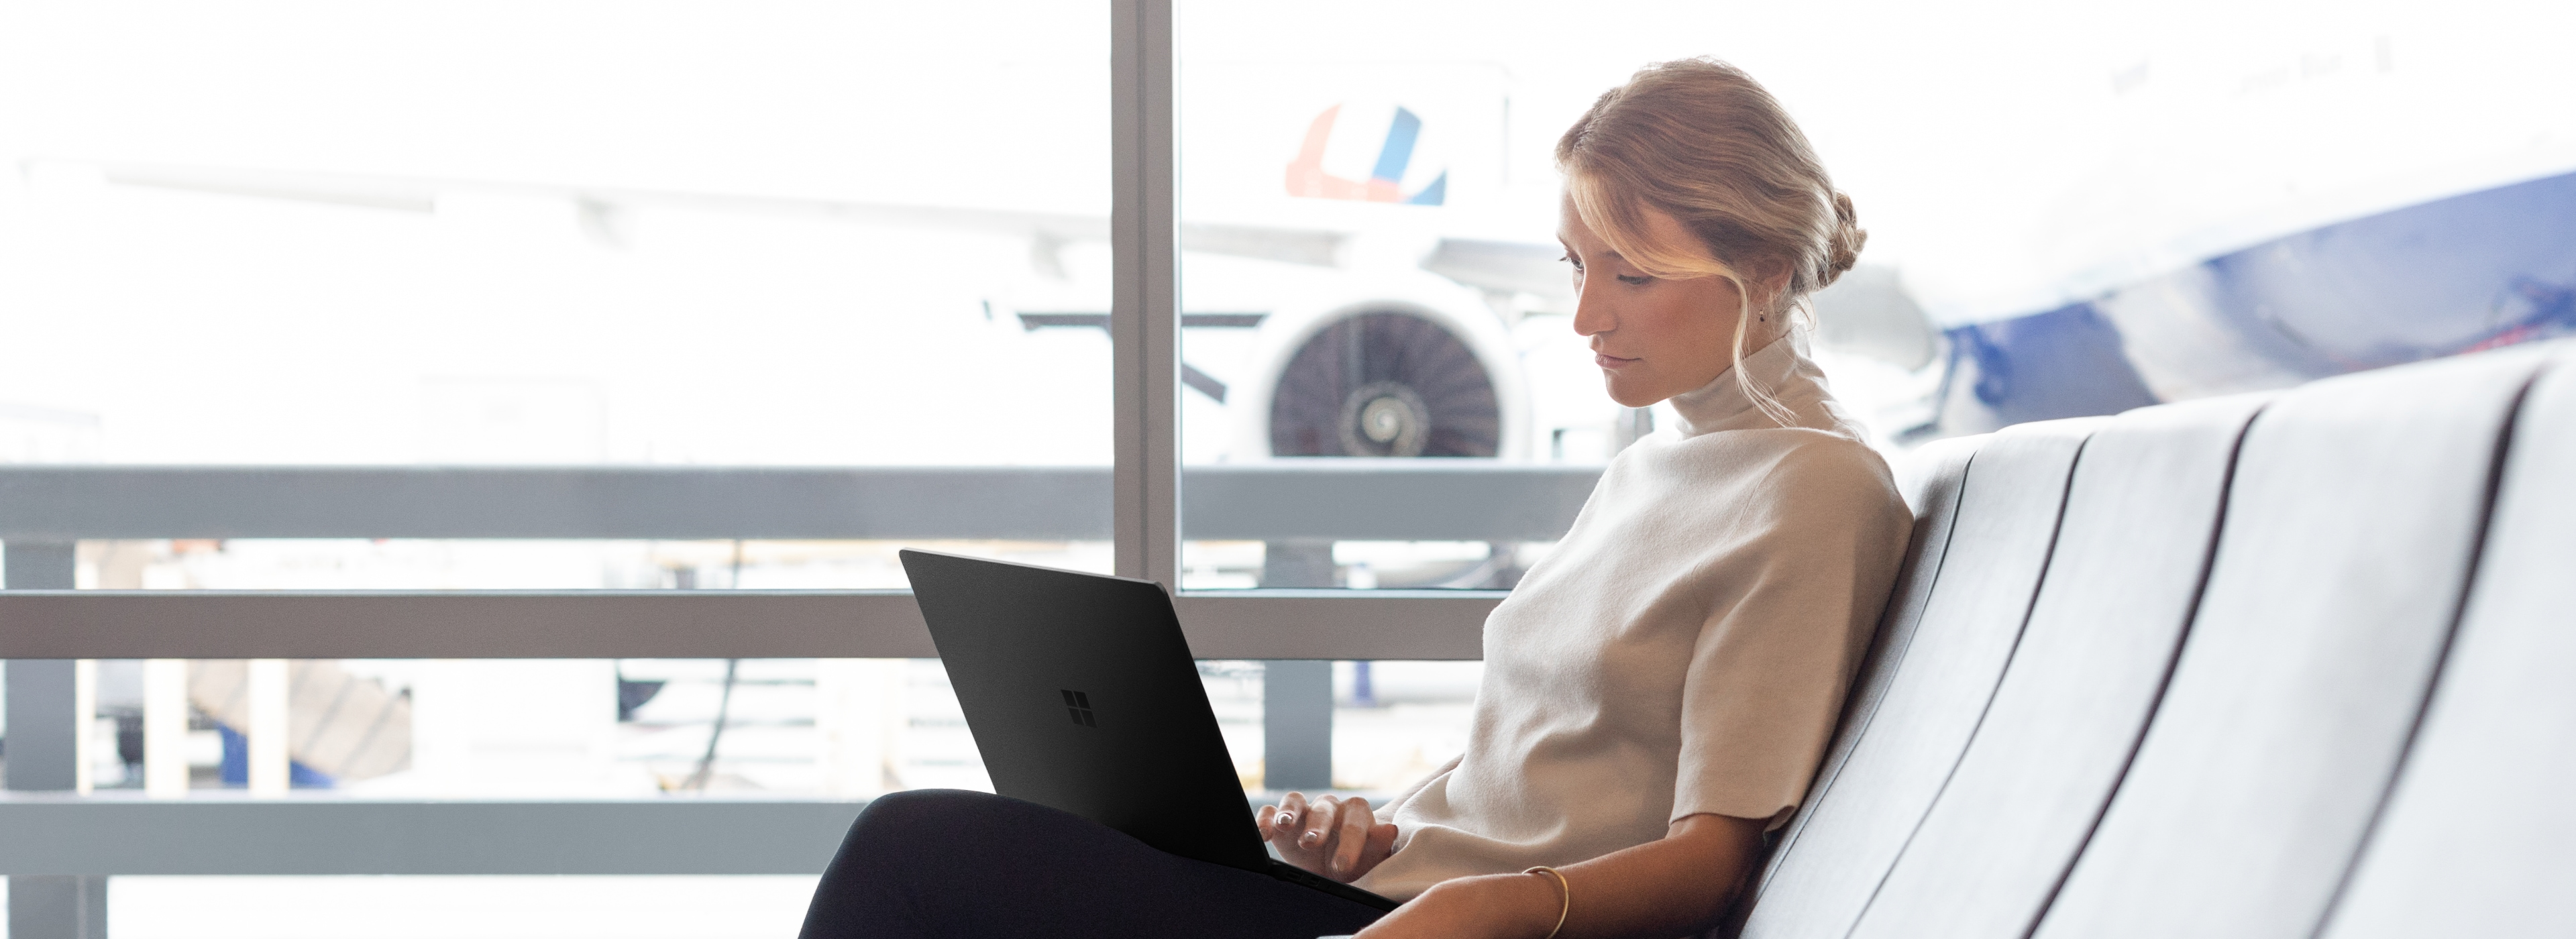 A person sitting in an airport using a laptop.